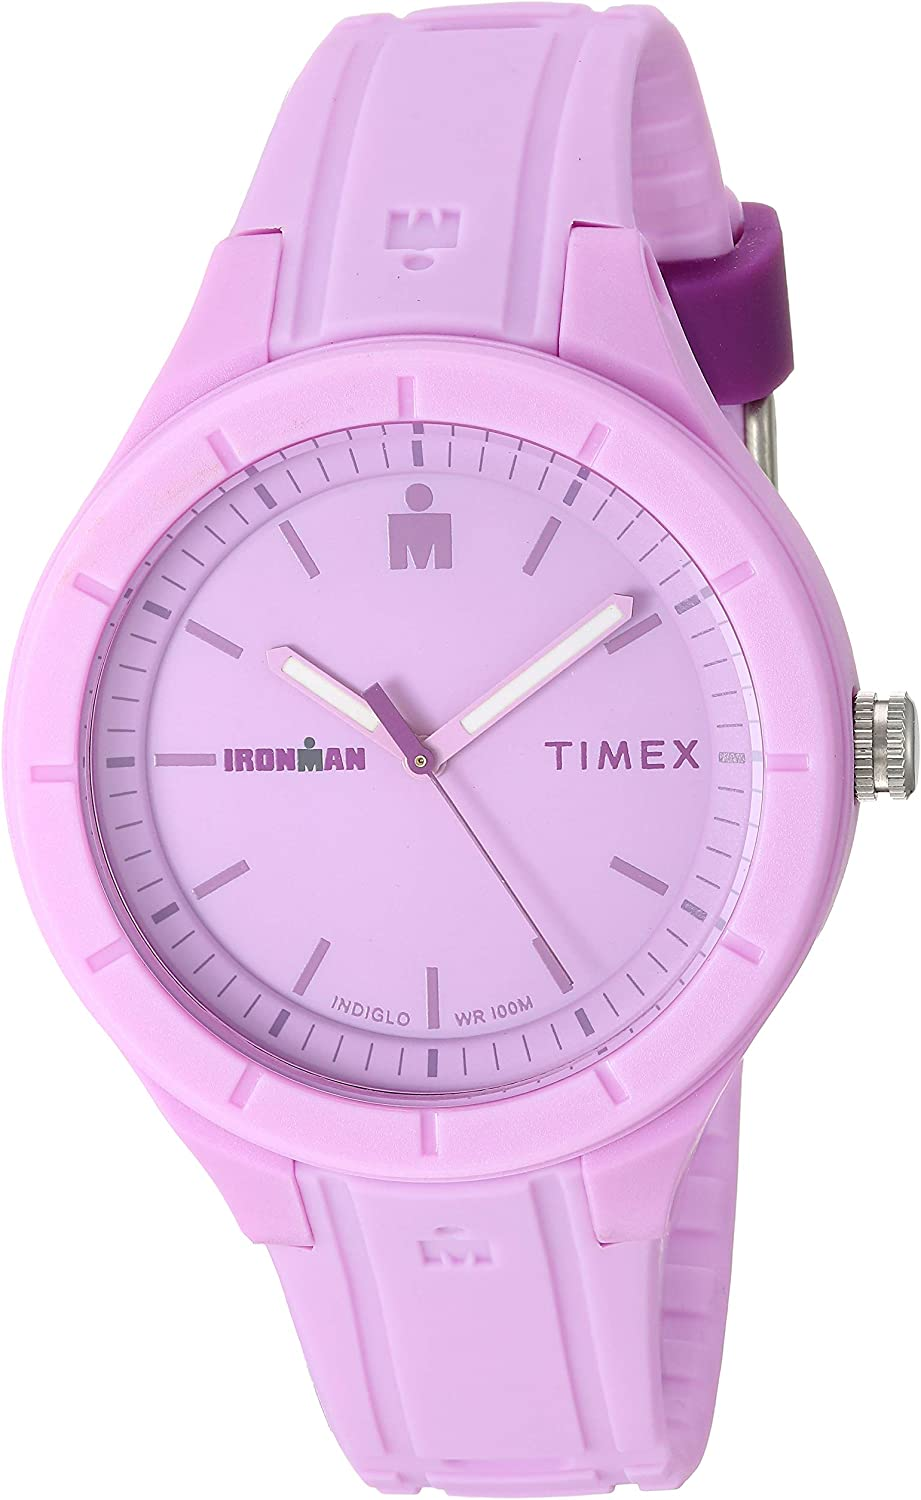 Timex Ironman Essential Urban Popular shop is the lowest Rapid rise price challenge Analog 38mm Watch